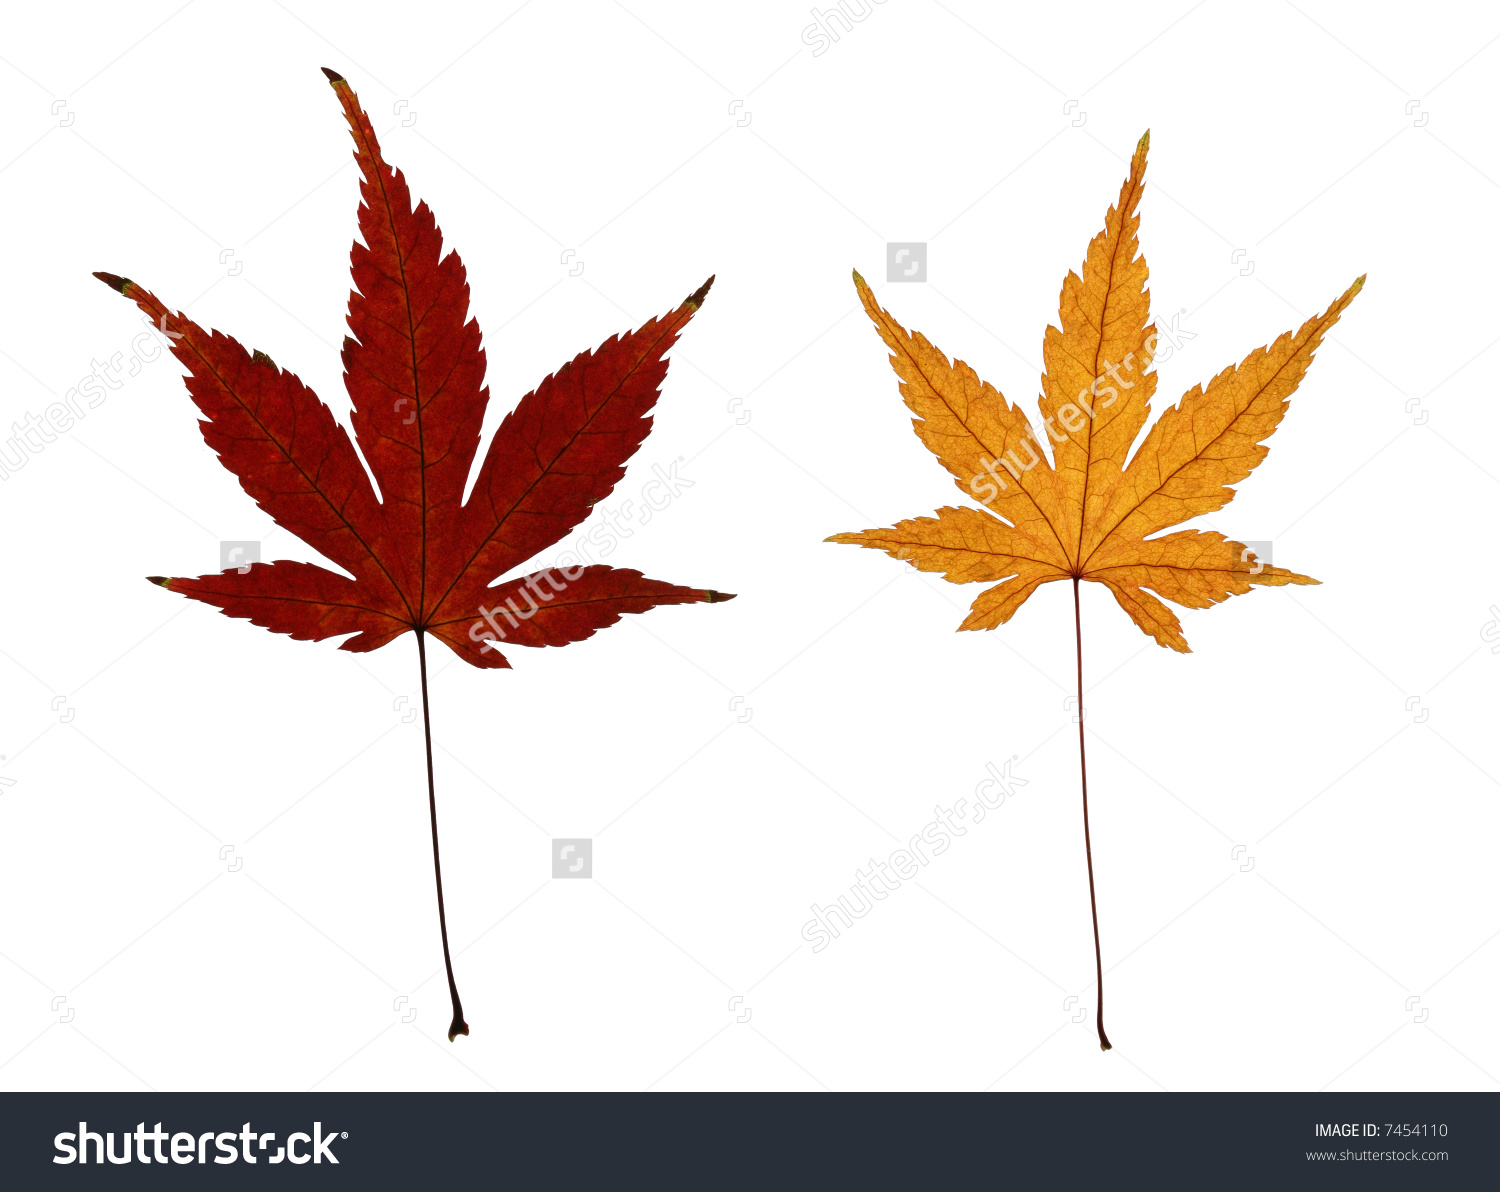 Two Autumn Leaves Japanese Maple Acer Stock Photo 7454110.